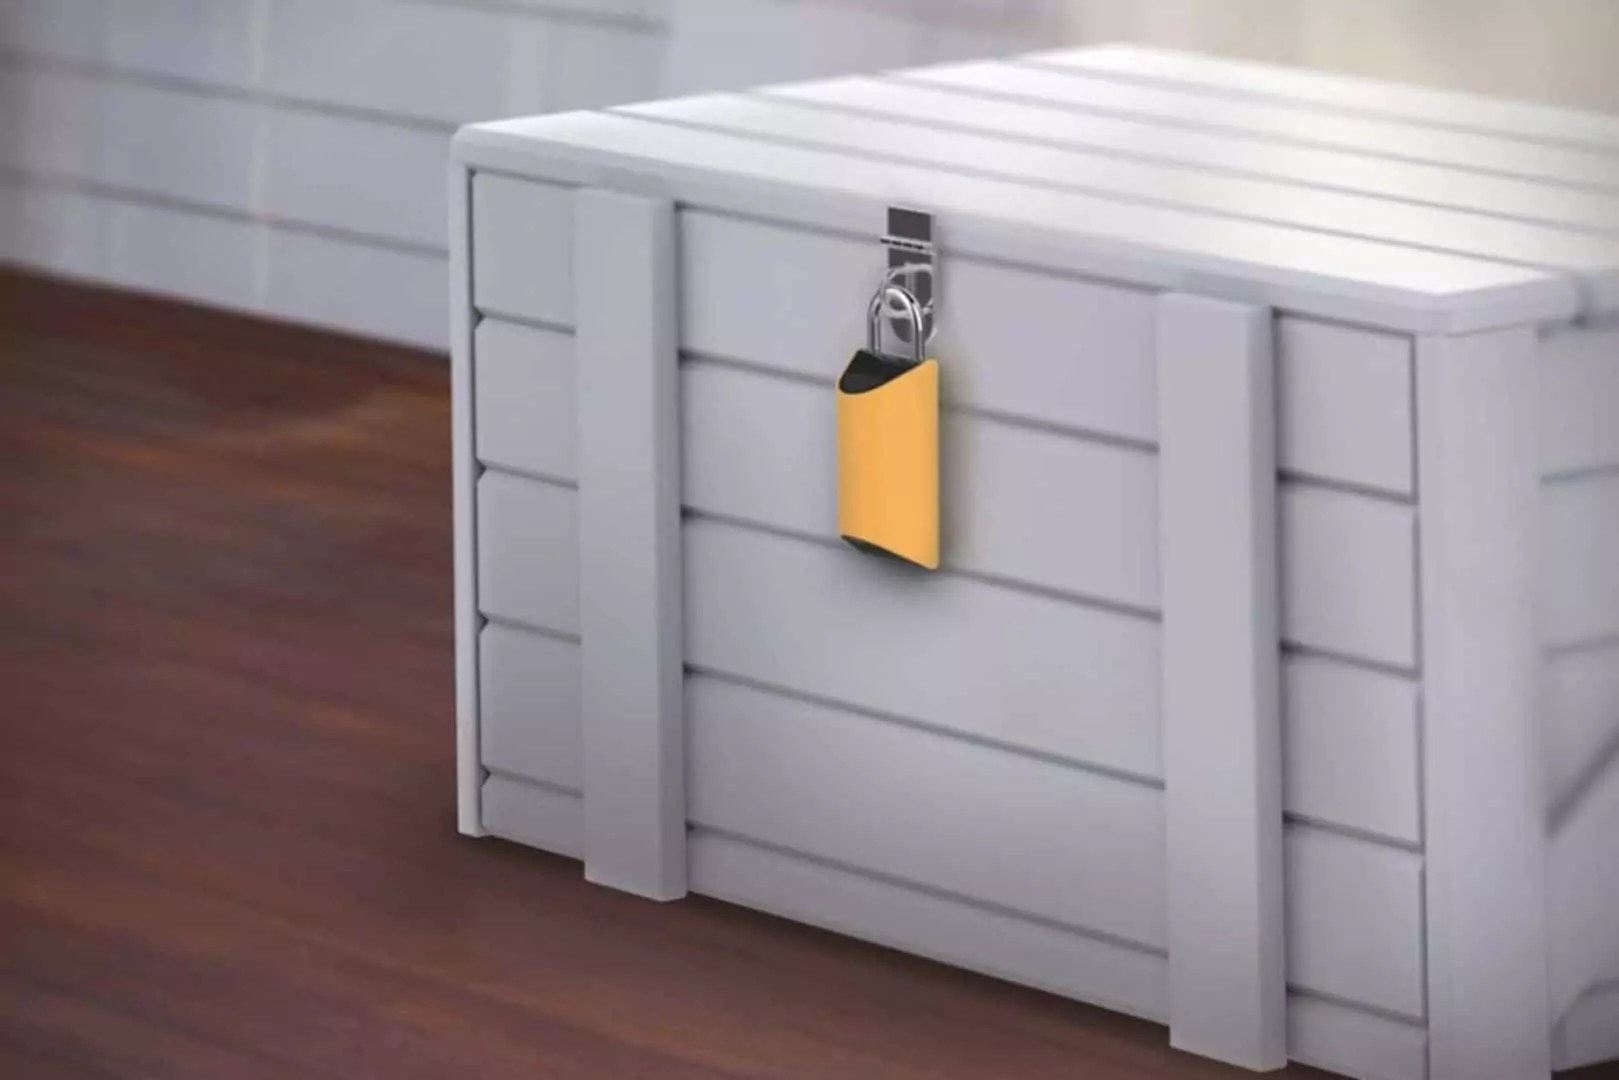 BoxLock: The first smart padlock designed to protect deliveries.